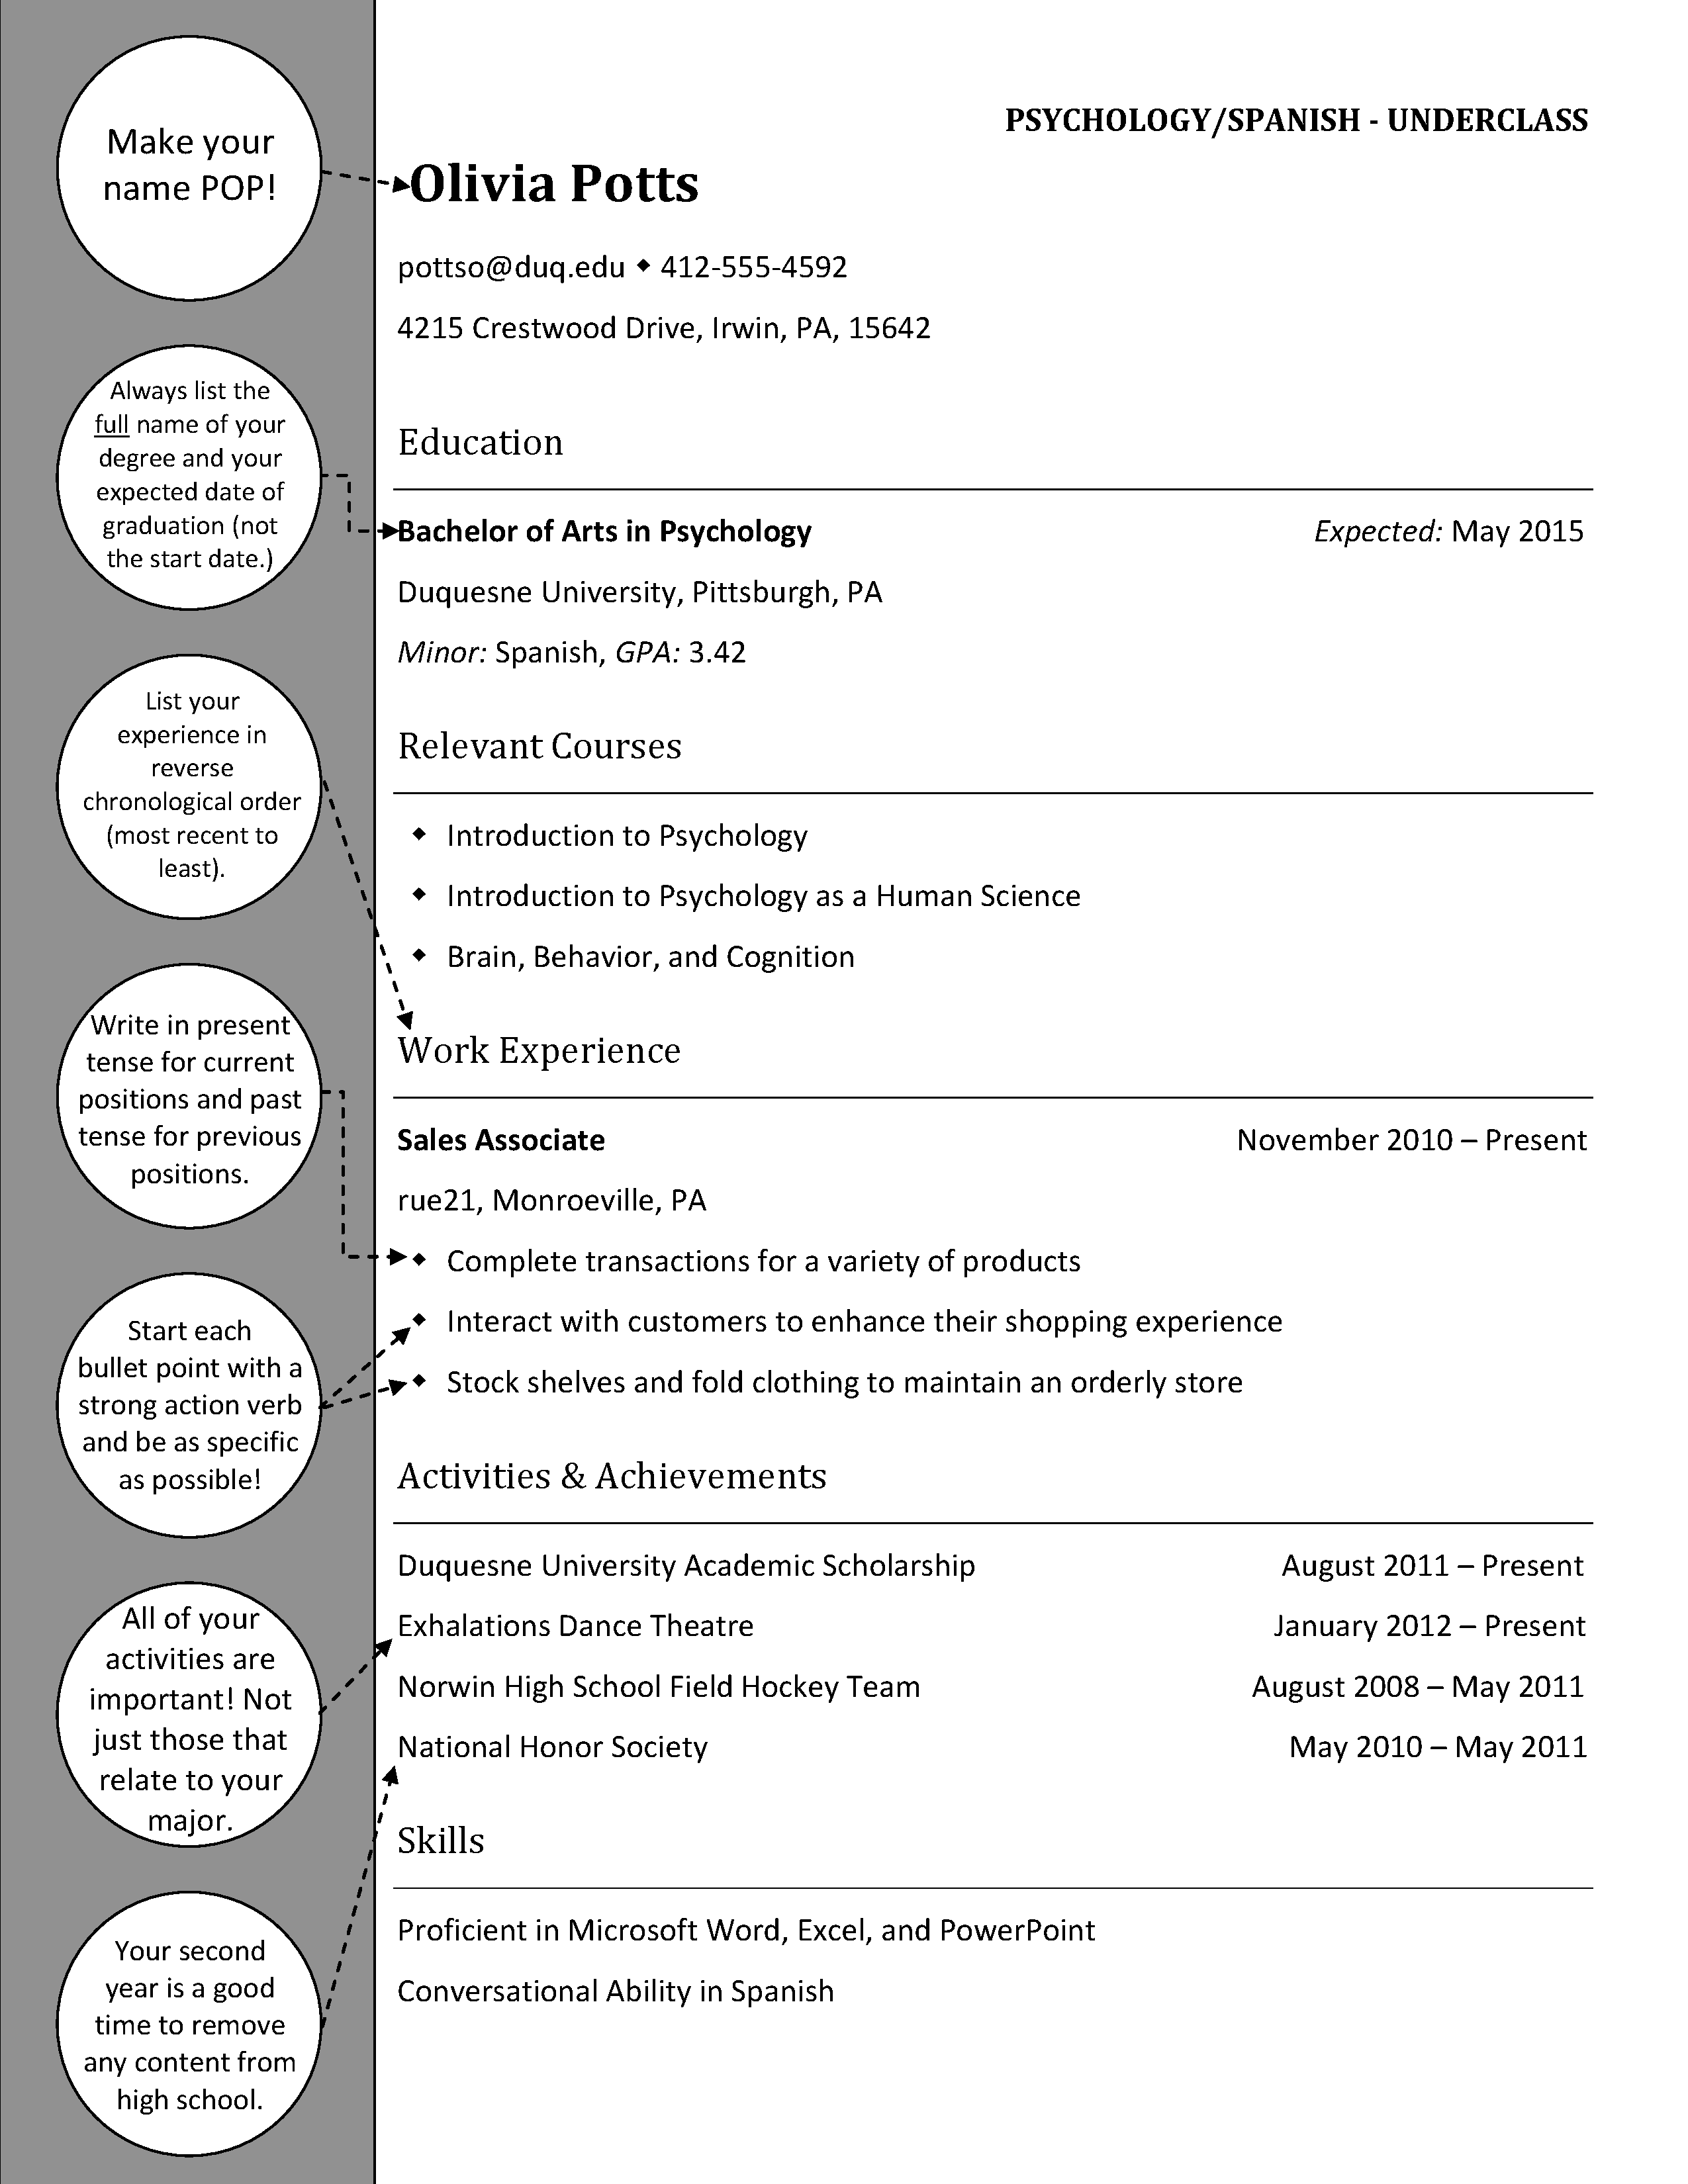 Psychology Underclass | Resumes and Cover Letters | Pinterest ...